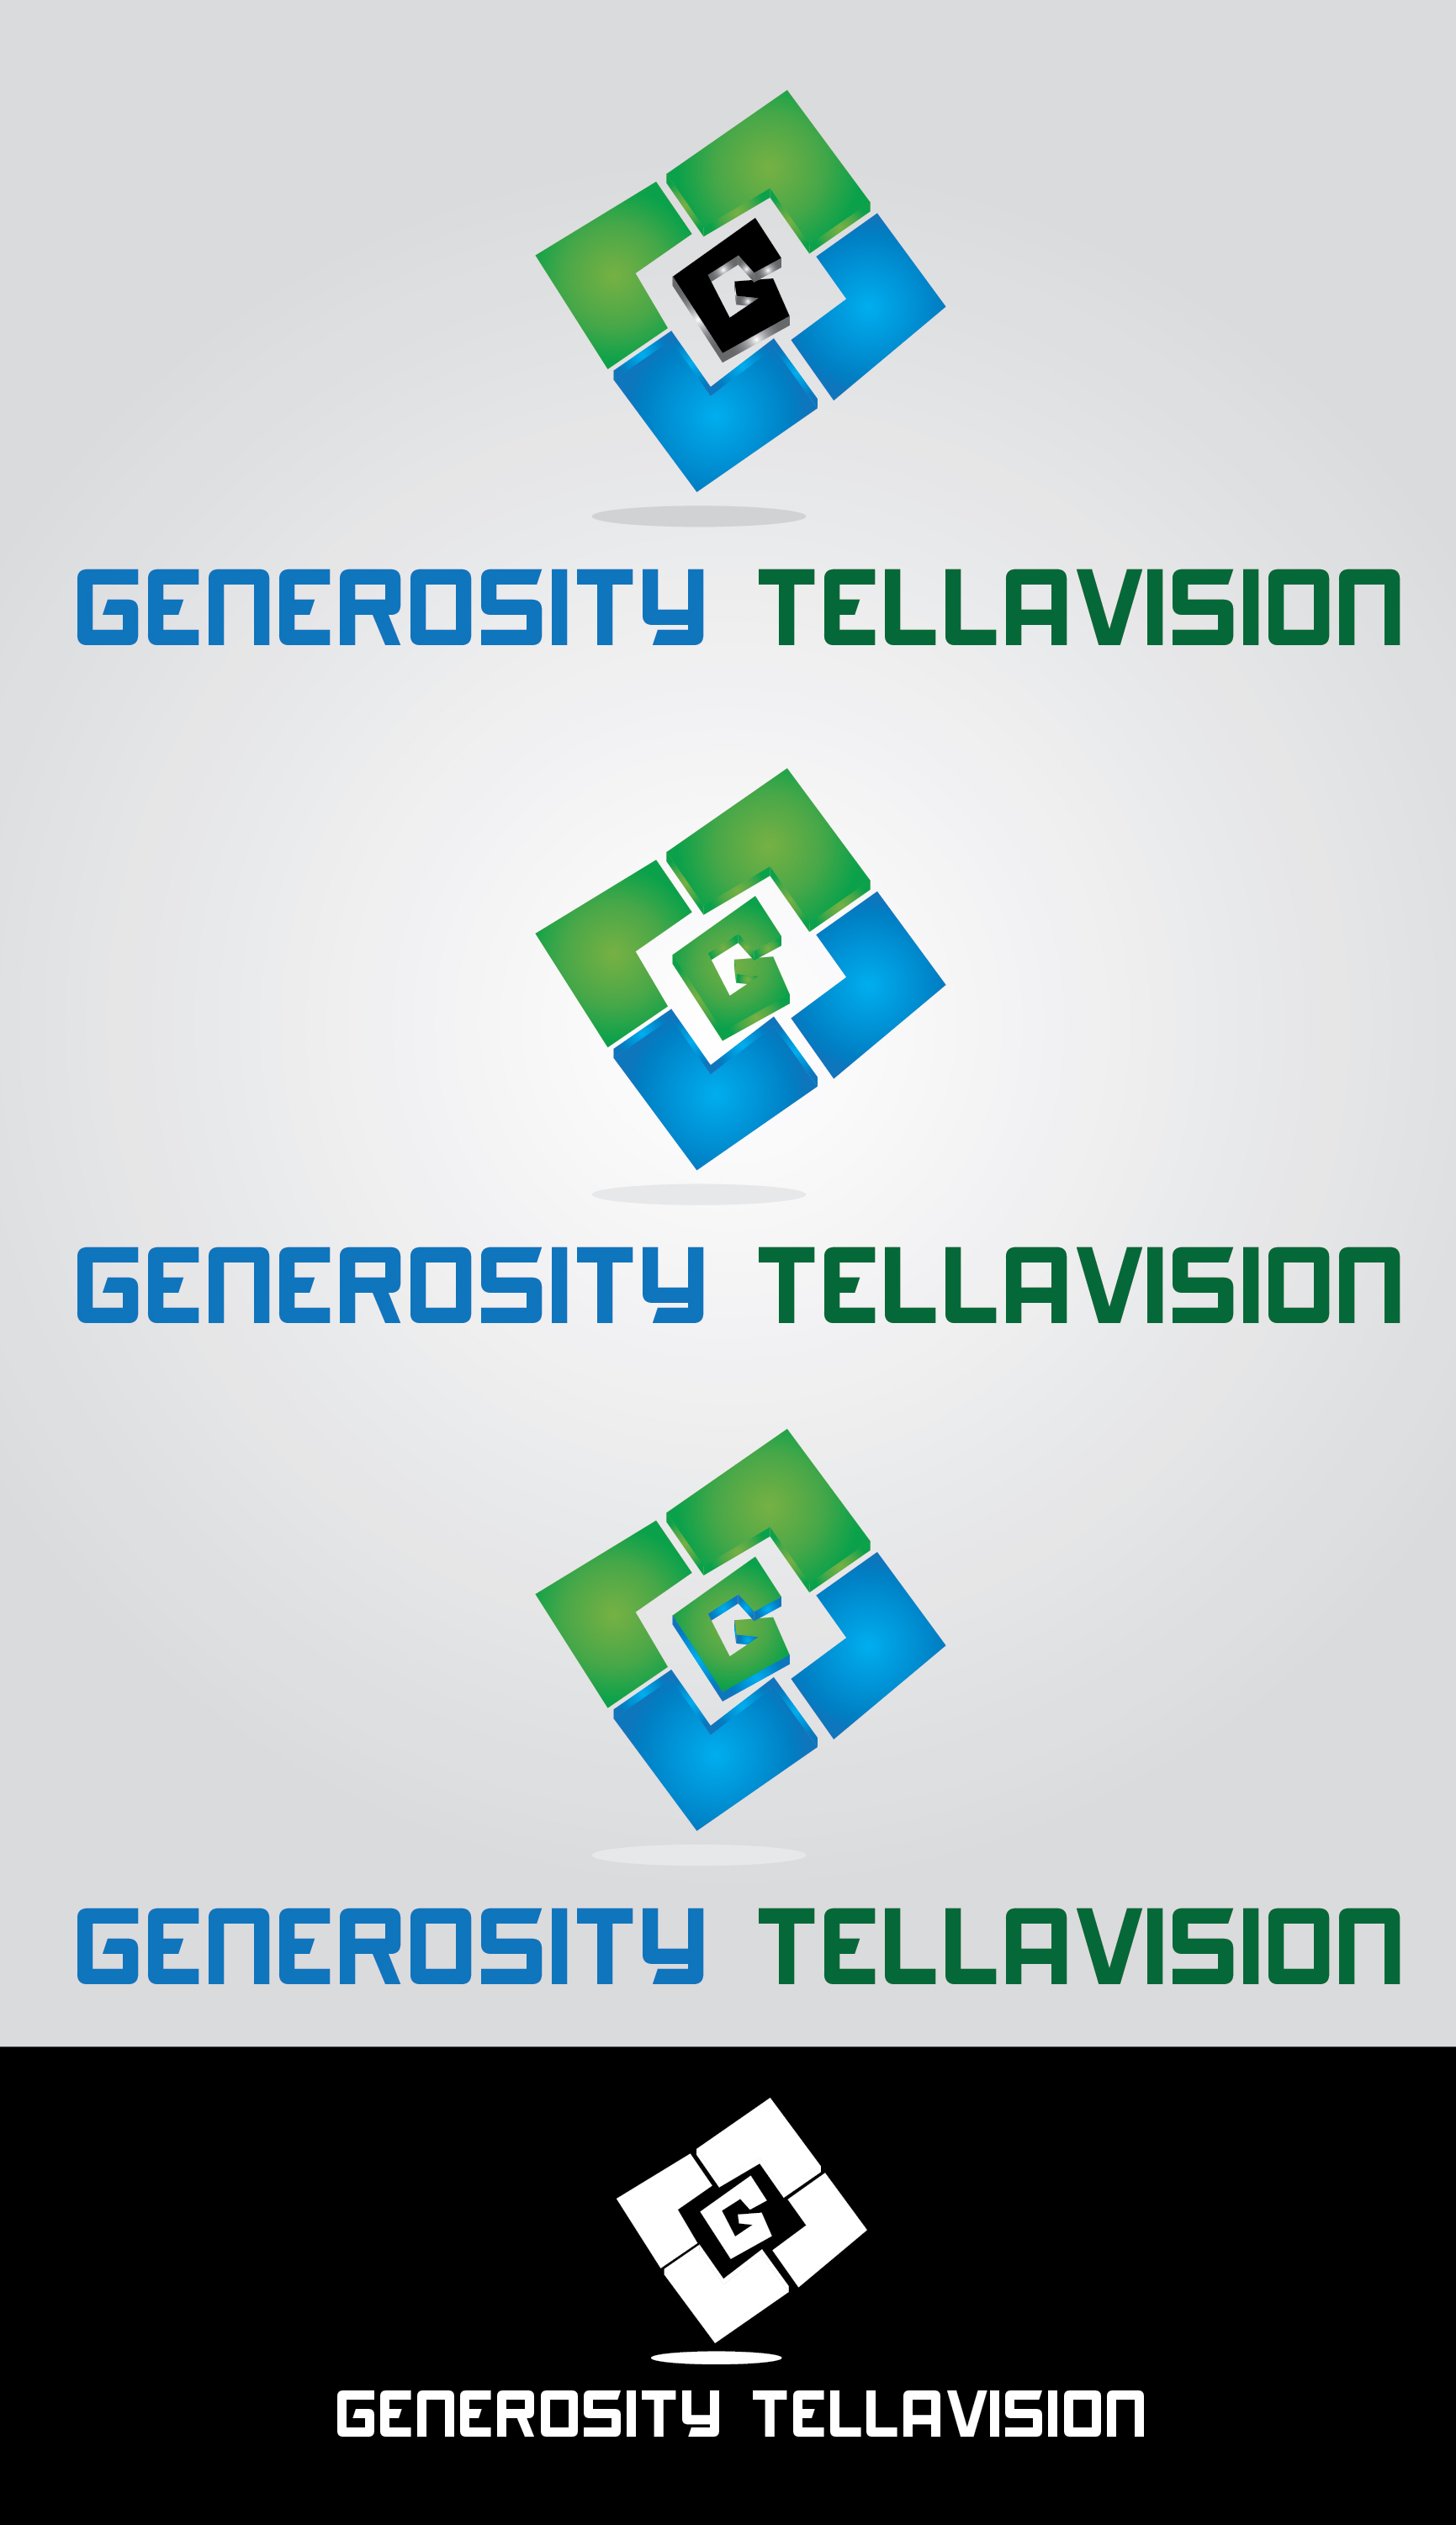 Logo Design by mediaproductionart - Entry No. 61 in the Logo Design Contest Artistic Logo Design for Generosity TellAVision.